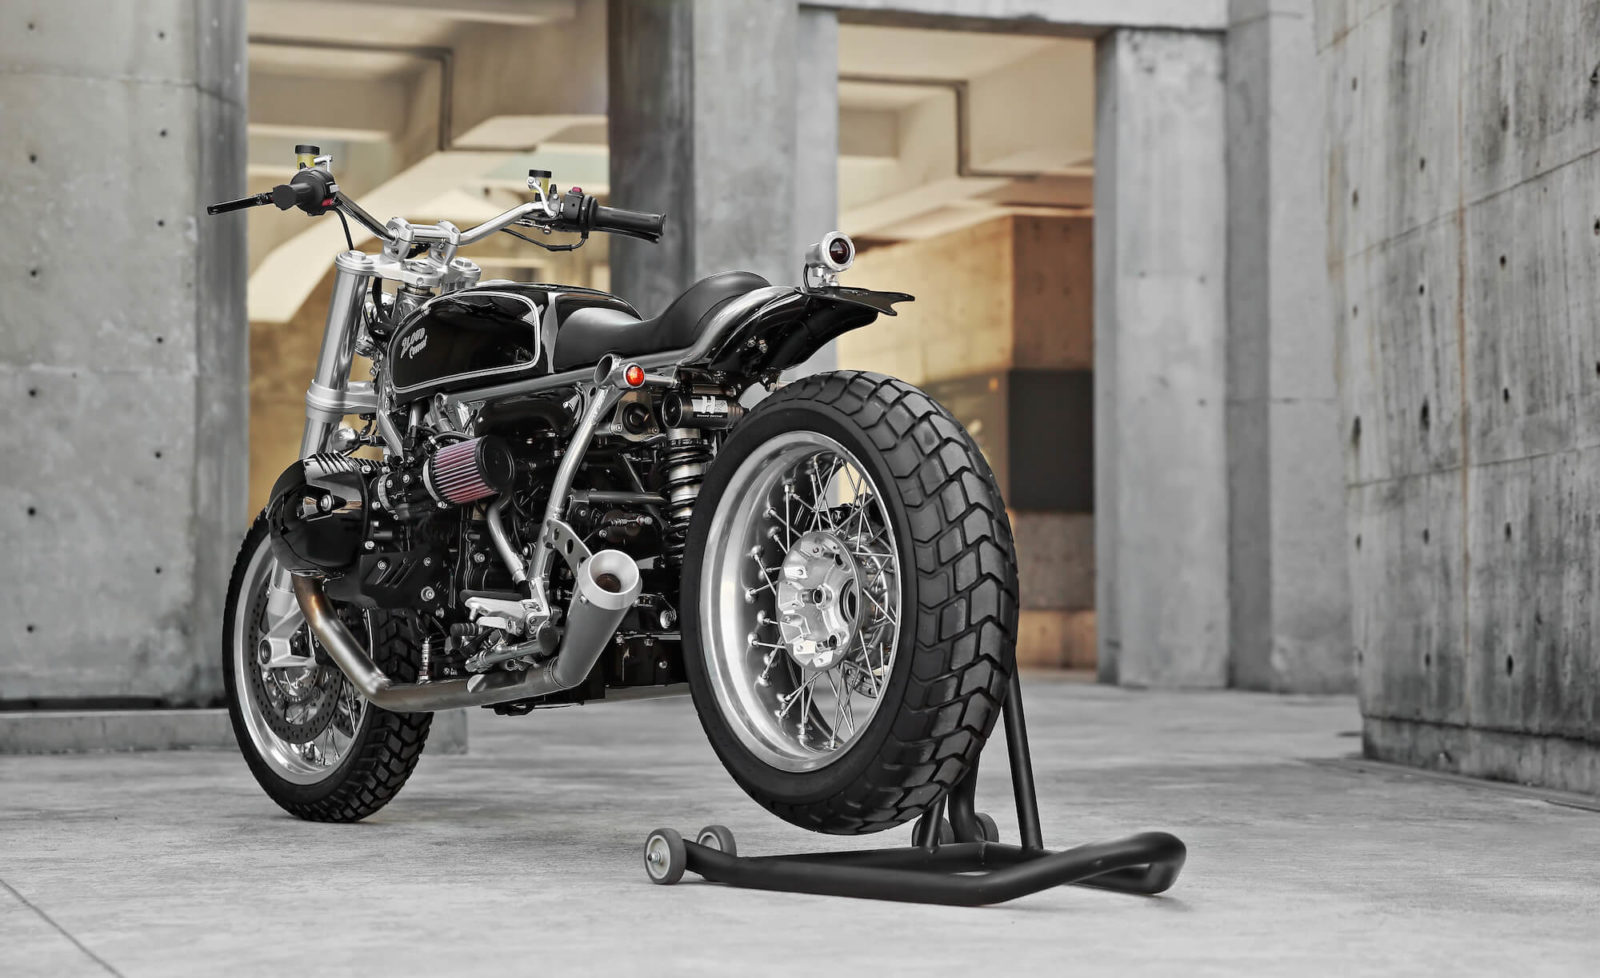 BMW NineT Nine T custom 2 Loud cafe racer scrambler